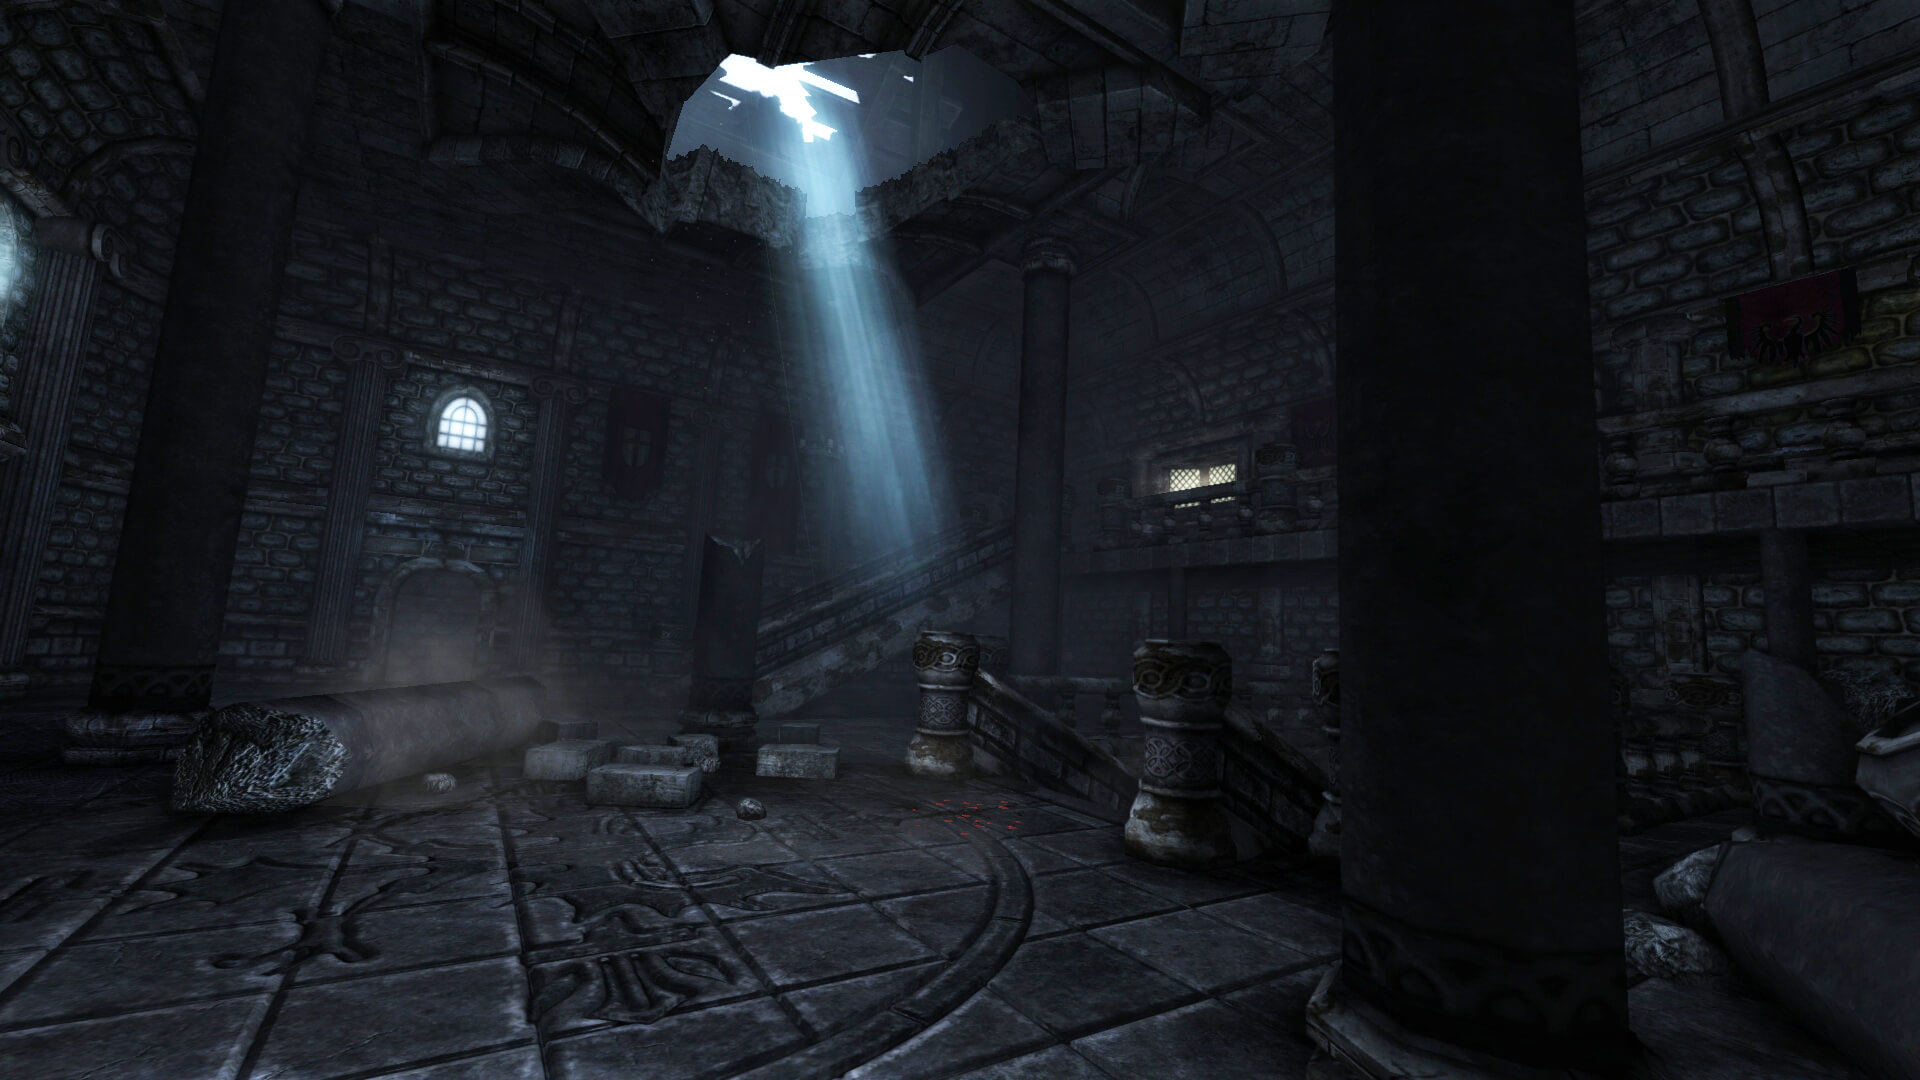 Amnesia: The Dark Descent celebrates 10 years by revisiting its development